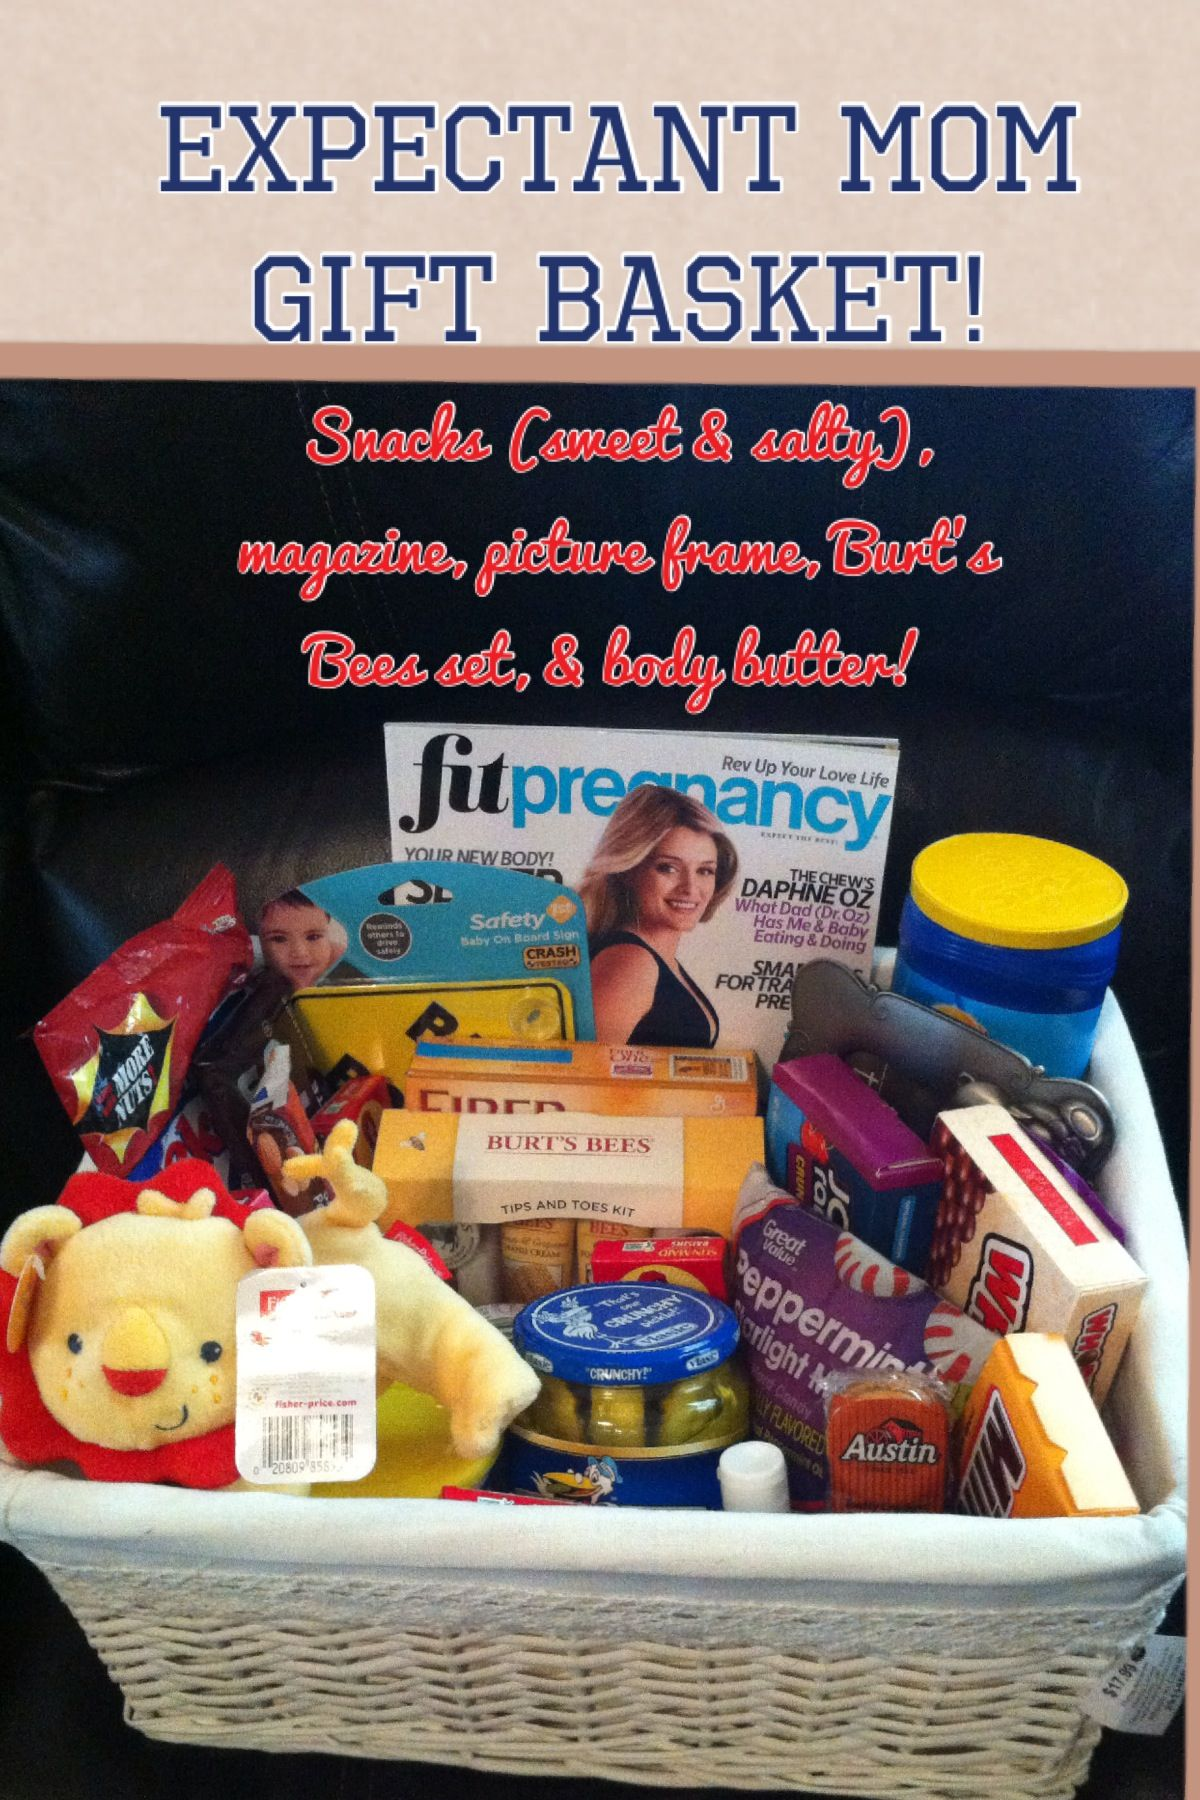 Pin By Cassandra Carlyle On B G Twins Expectant Mom Gift Basket